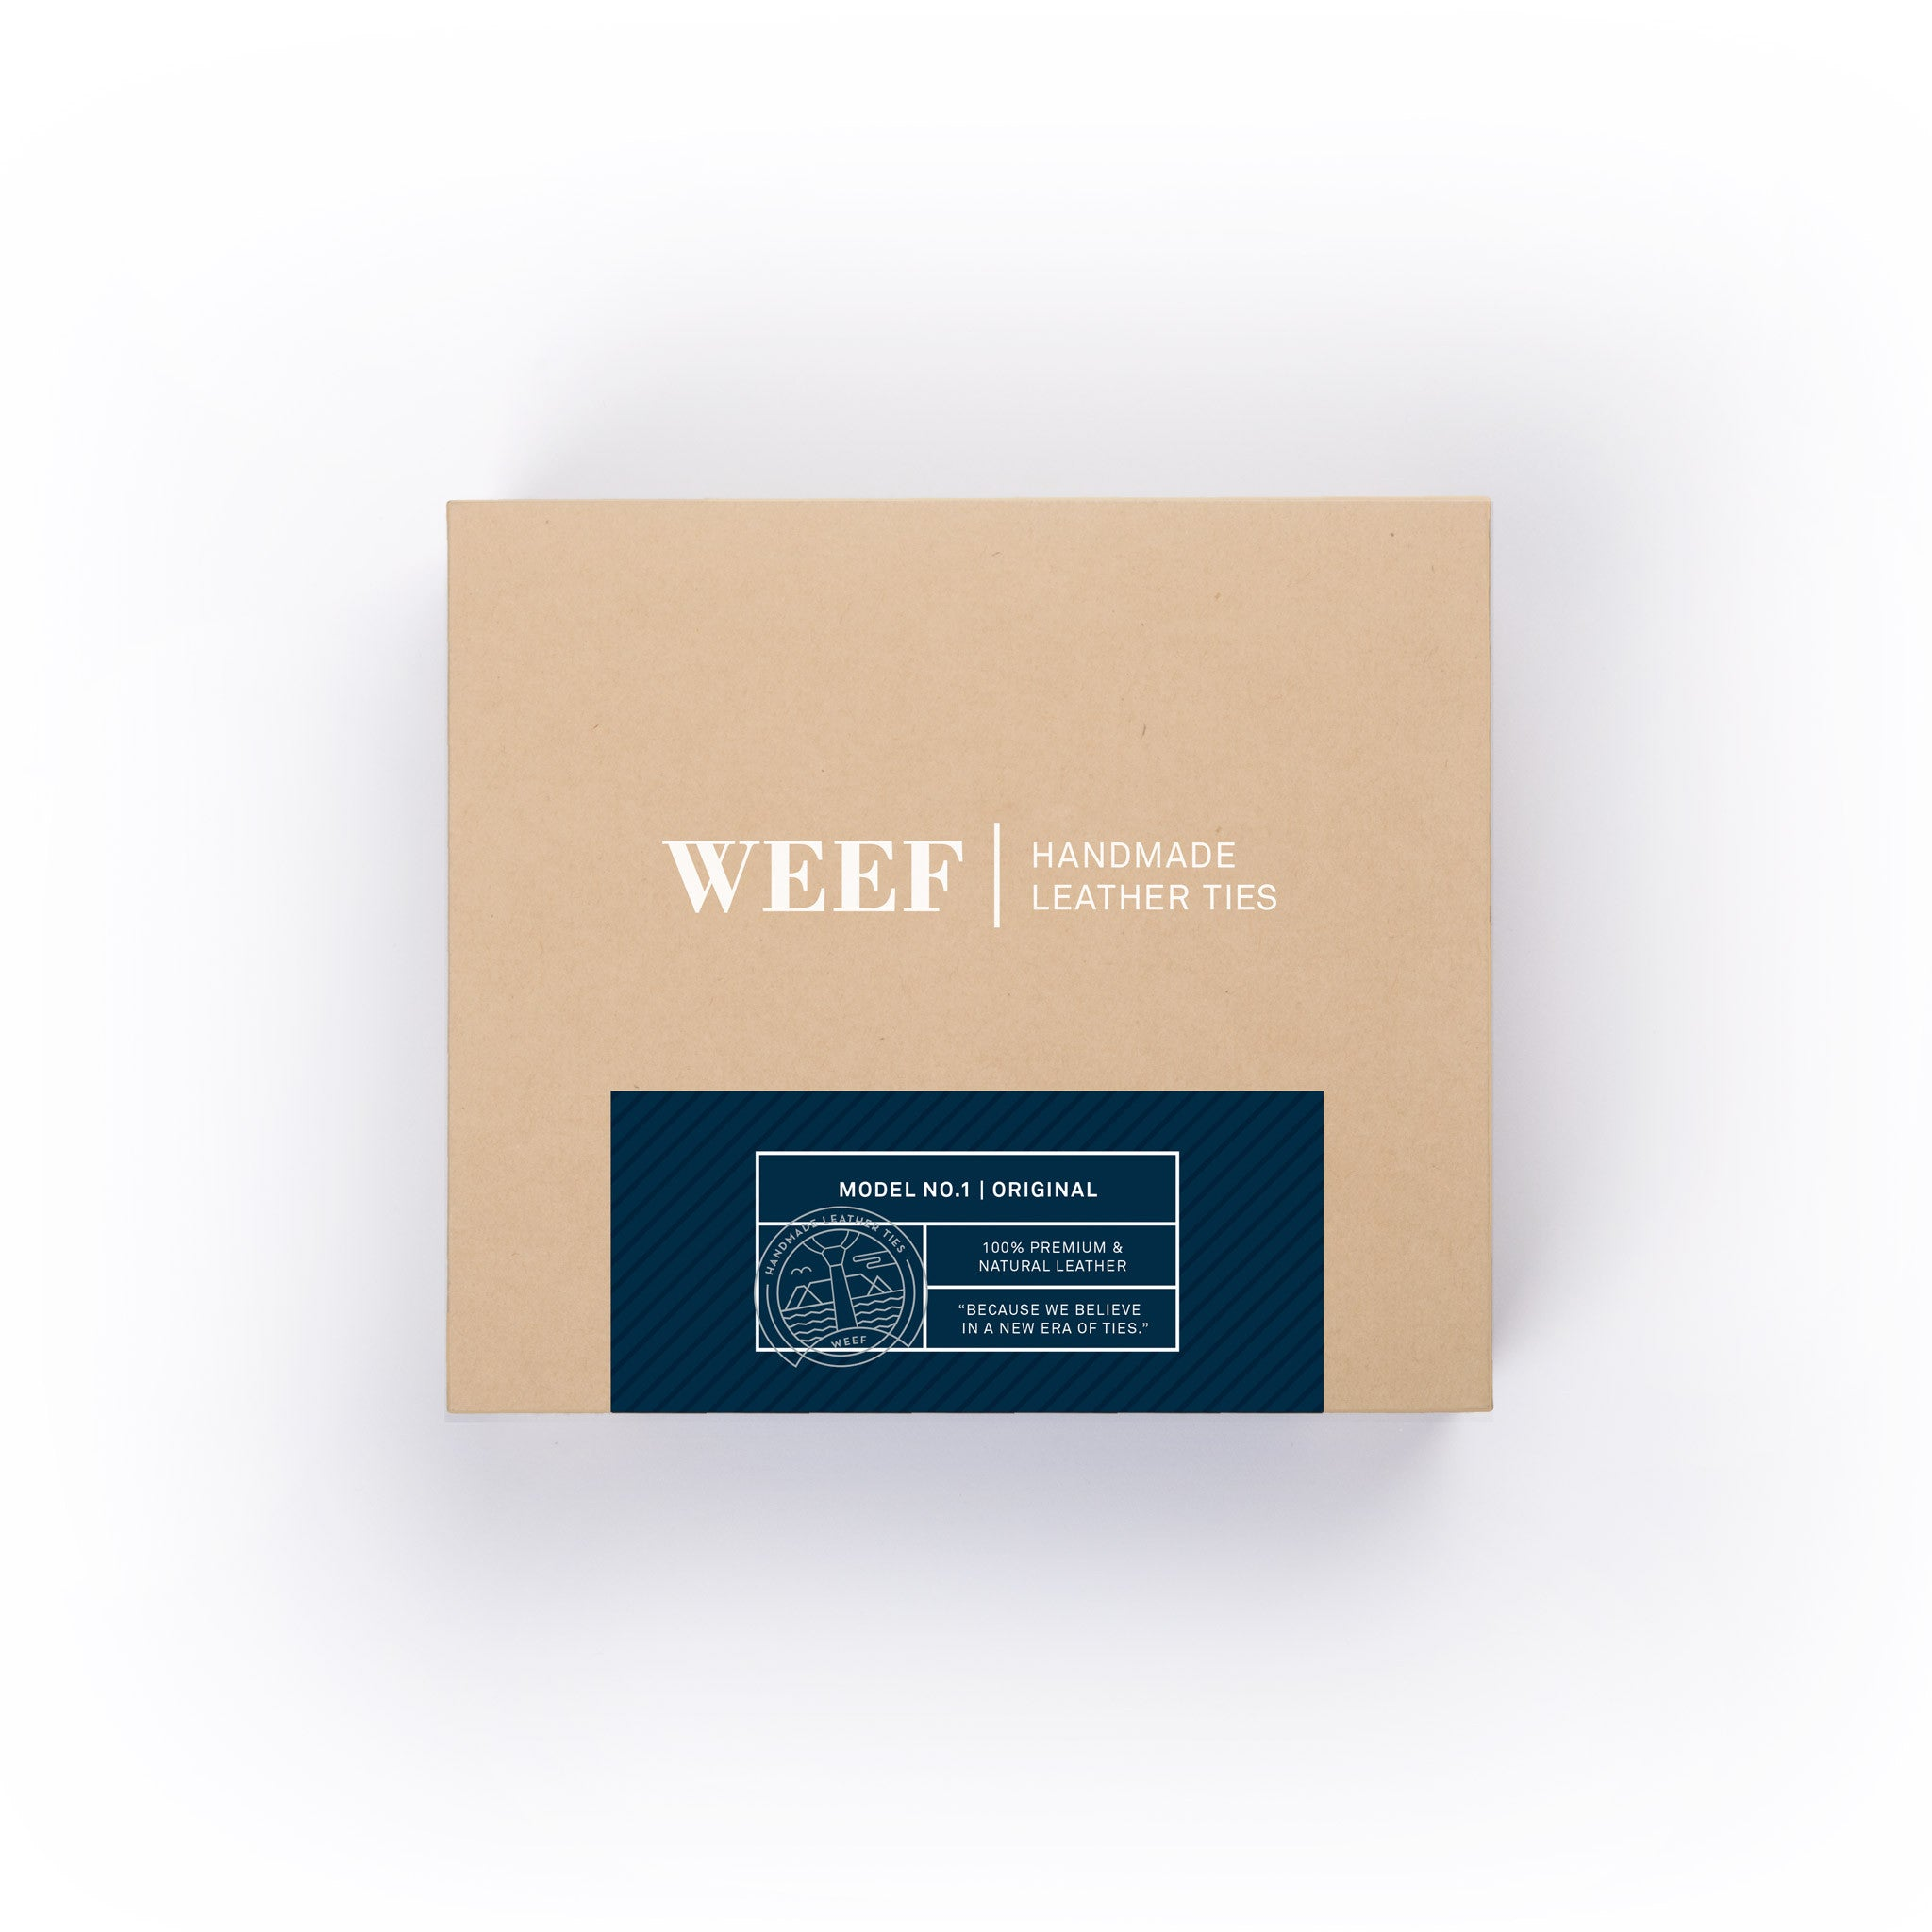 This is the premium packaging box of the deep navy WEEF handmade leather tie.